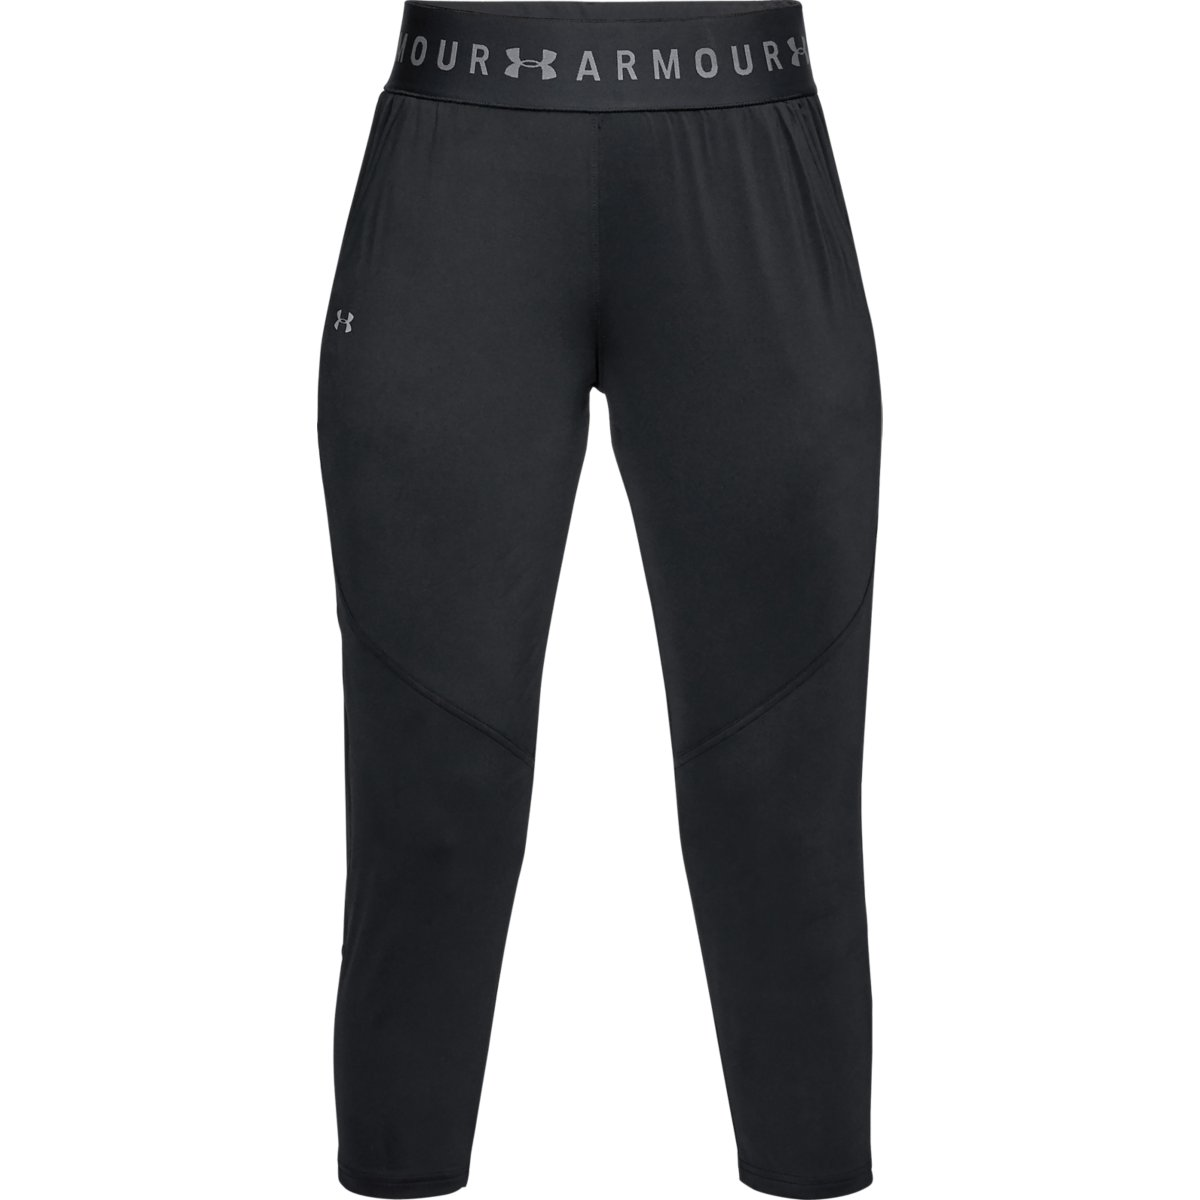 Under Armour Women's Armour Sport Crop | Amour